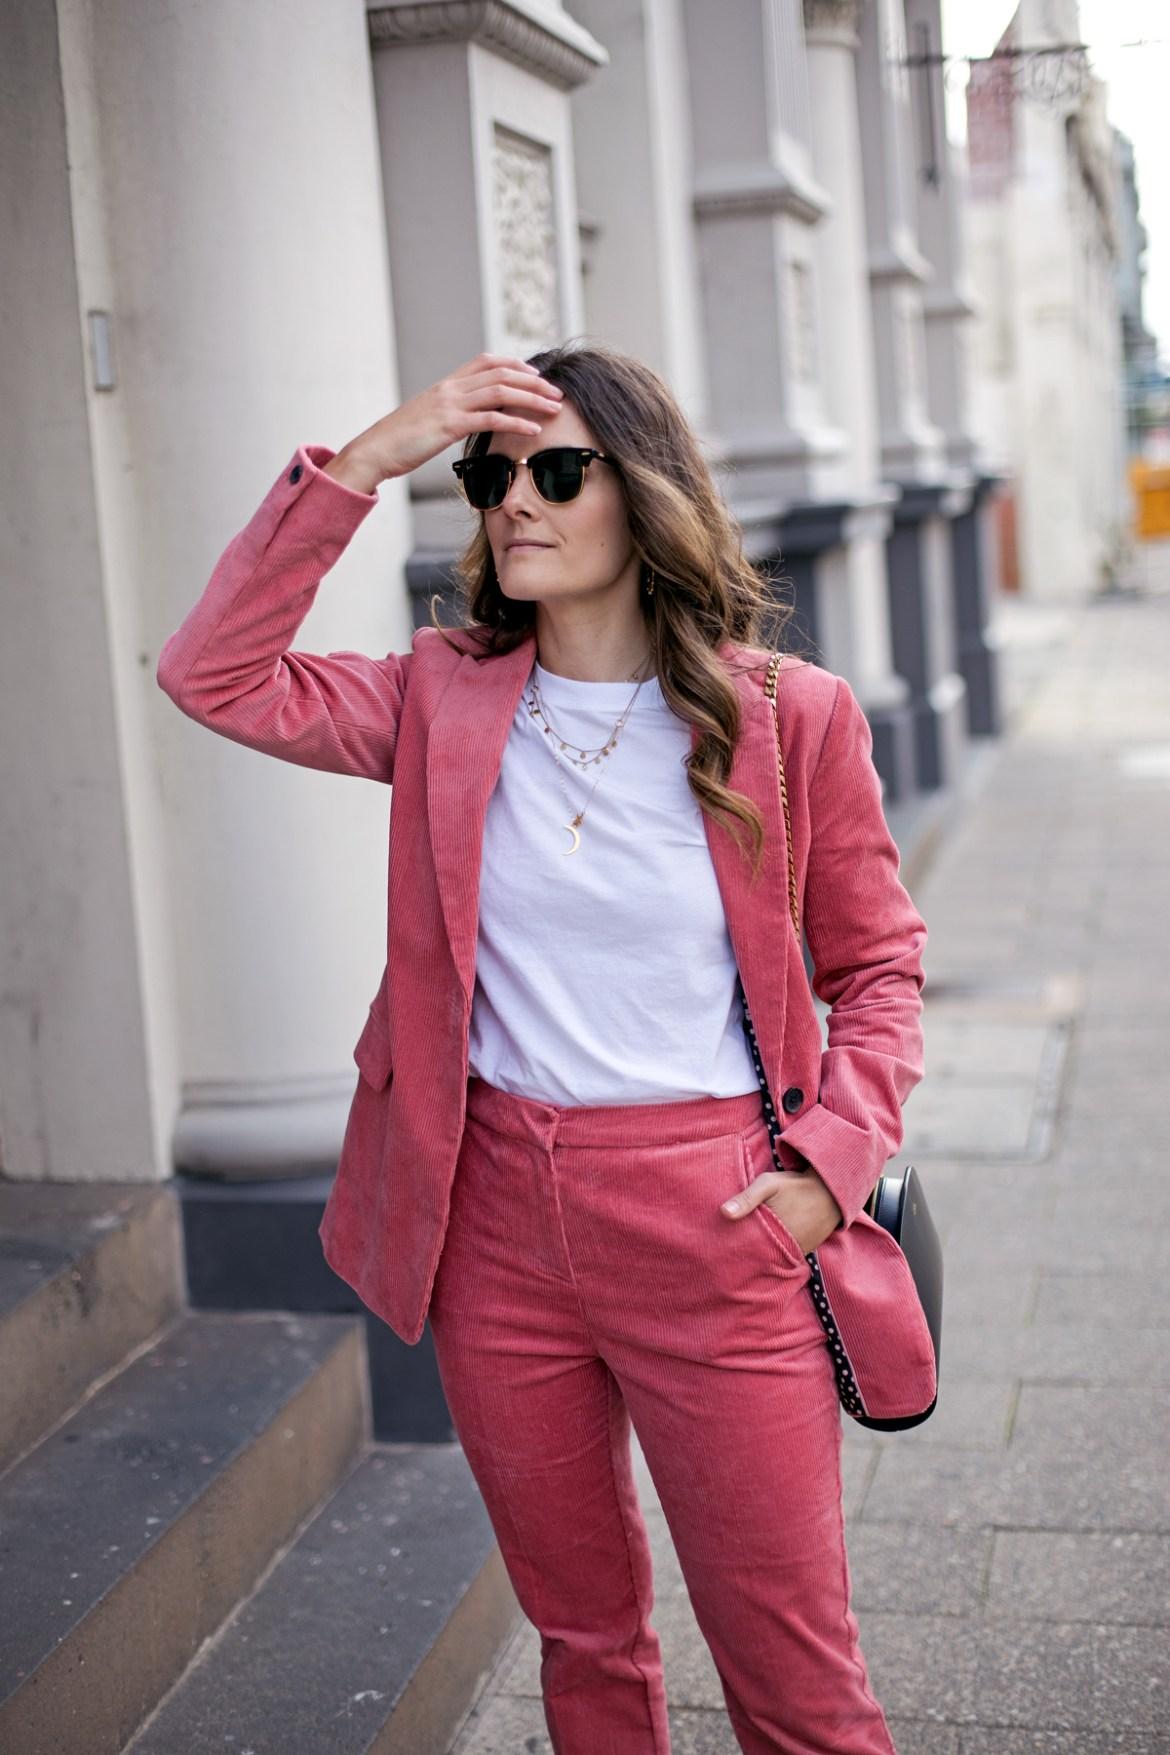 Boden Oxshott corduroy blazer in blush pink worn by fashion blogger from Australia Jenelle Witty of Inspiring Wit with Ray-Ban sunglasses